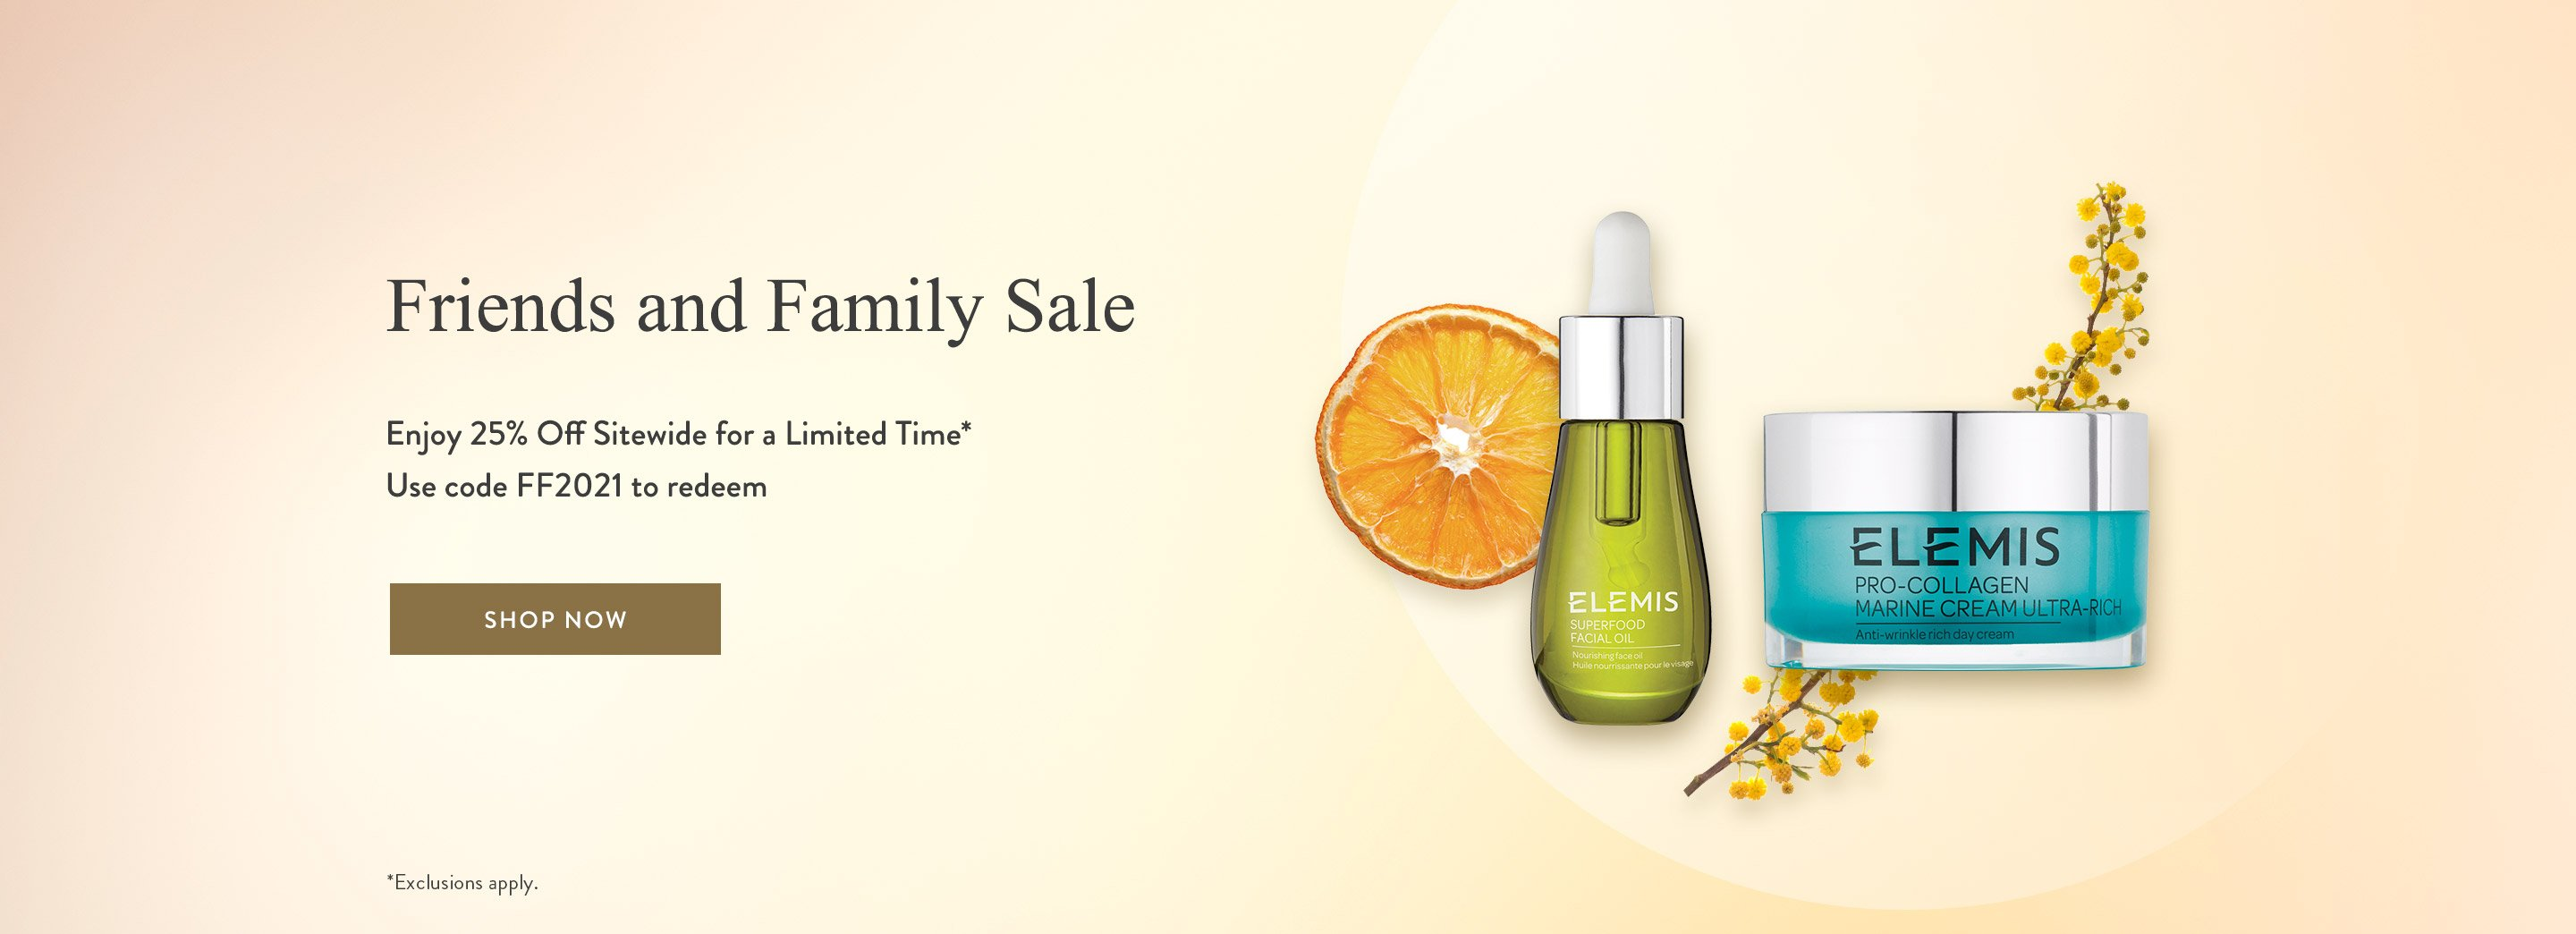 Friends and Family Sale - Up to 25% Off Sitewide